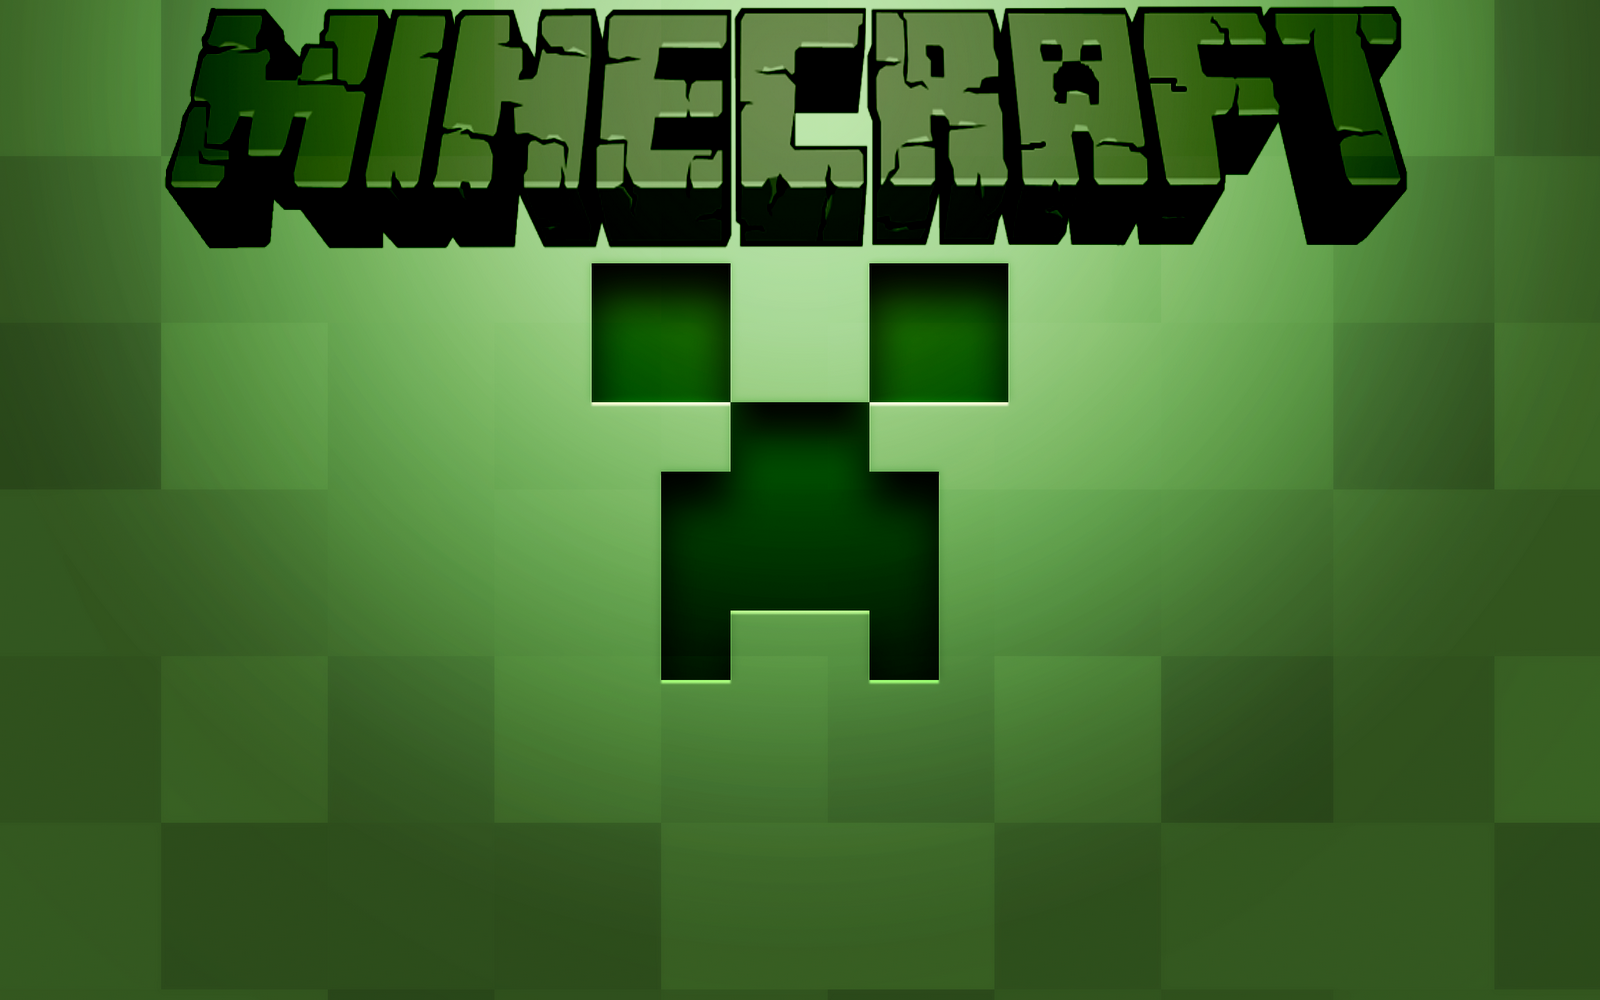 Free Download Wallpaper Minecraft Wallpaper 1080p Wallpaper